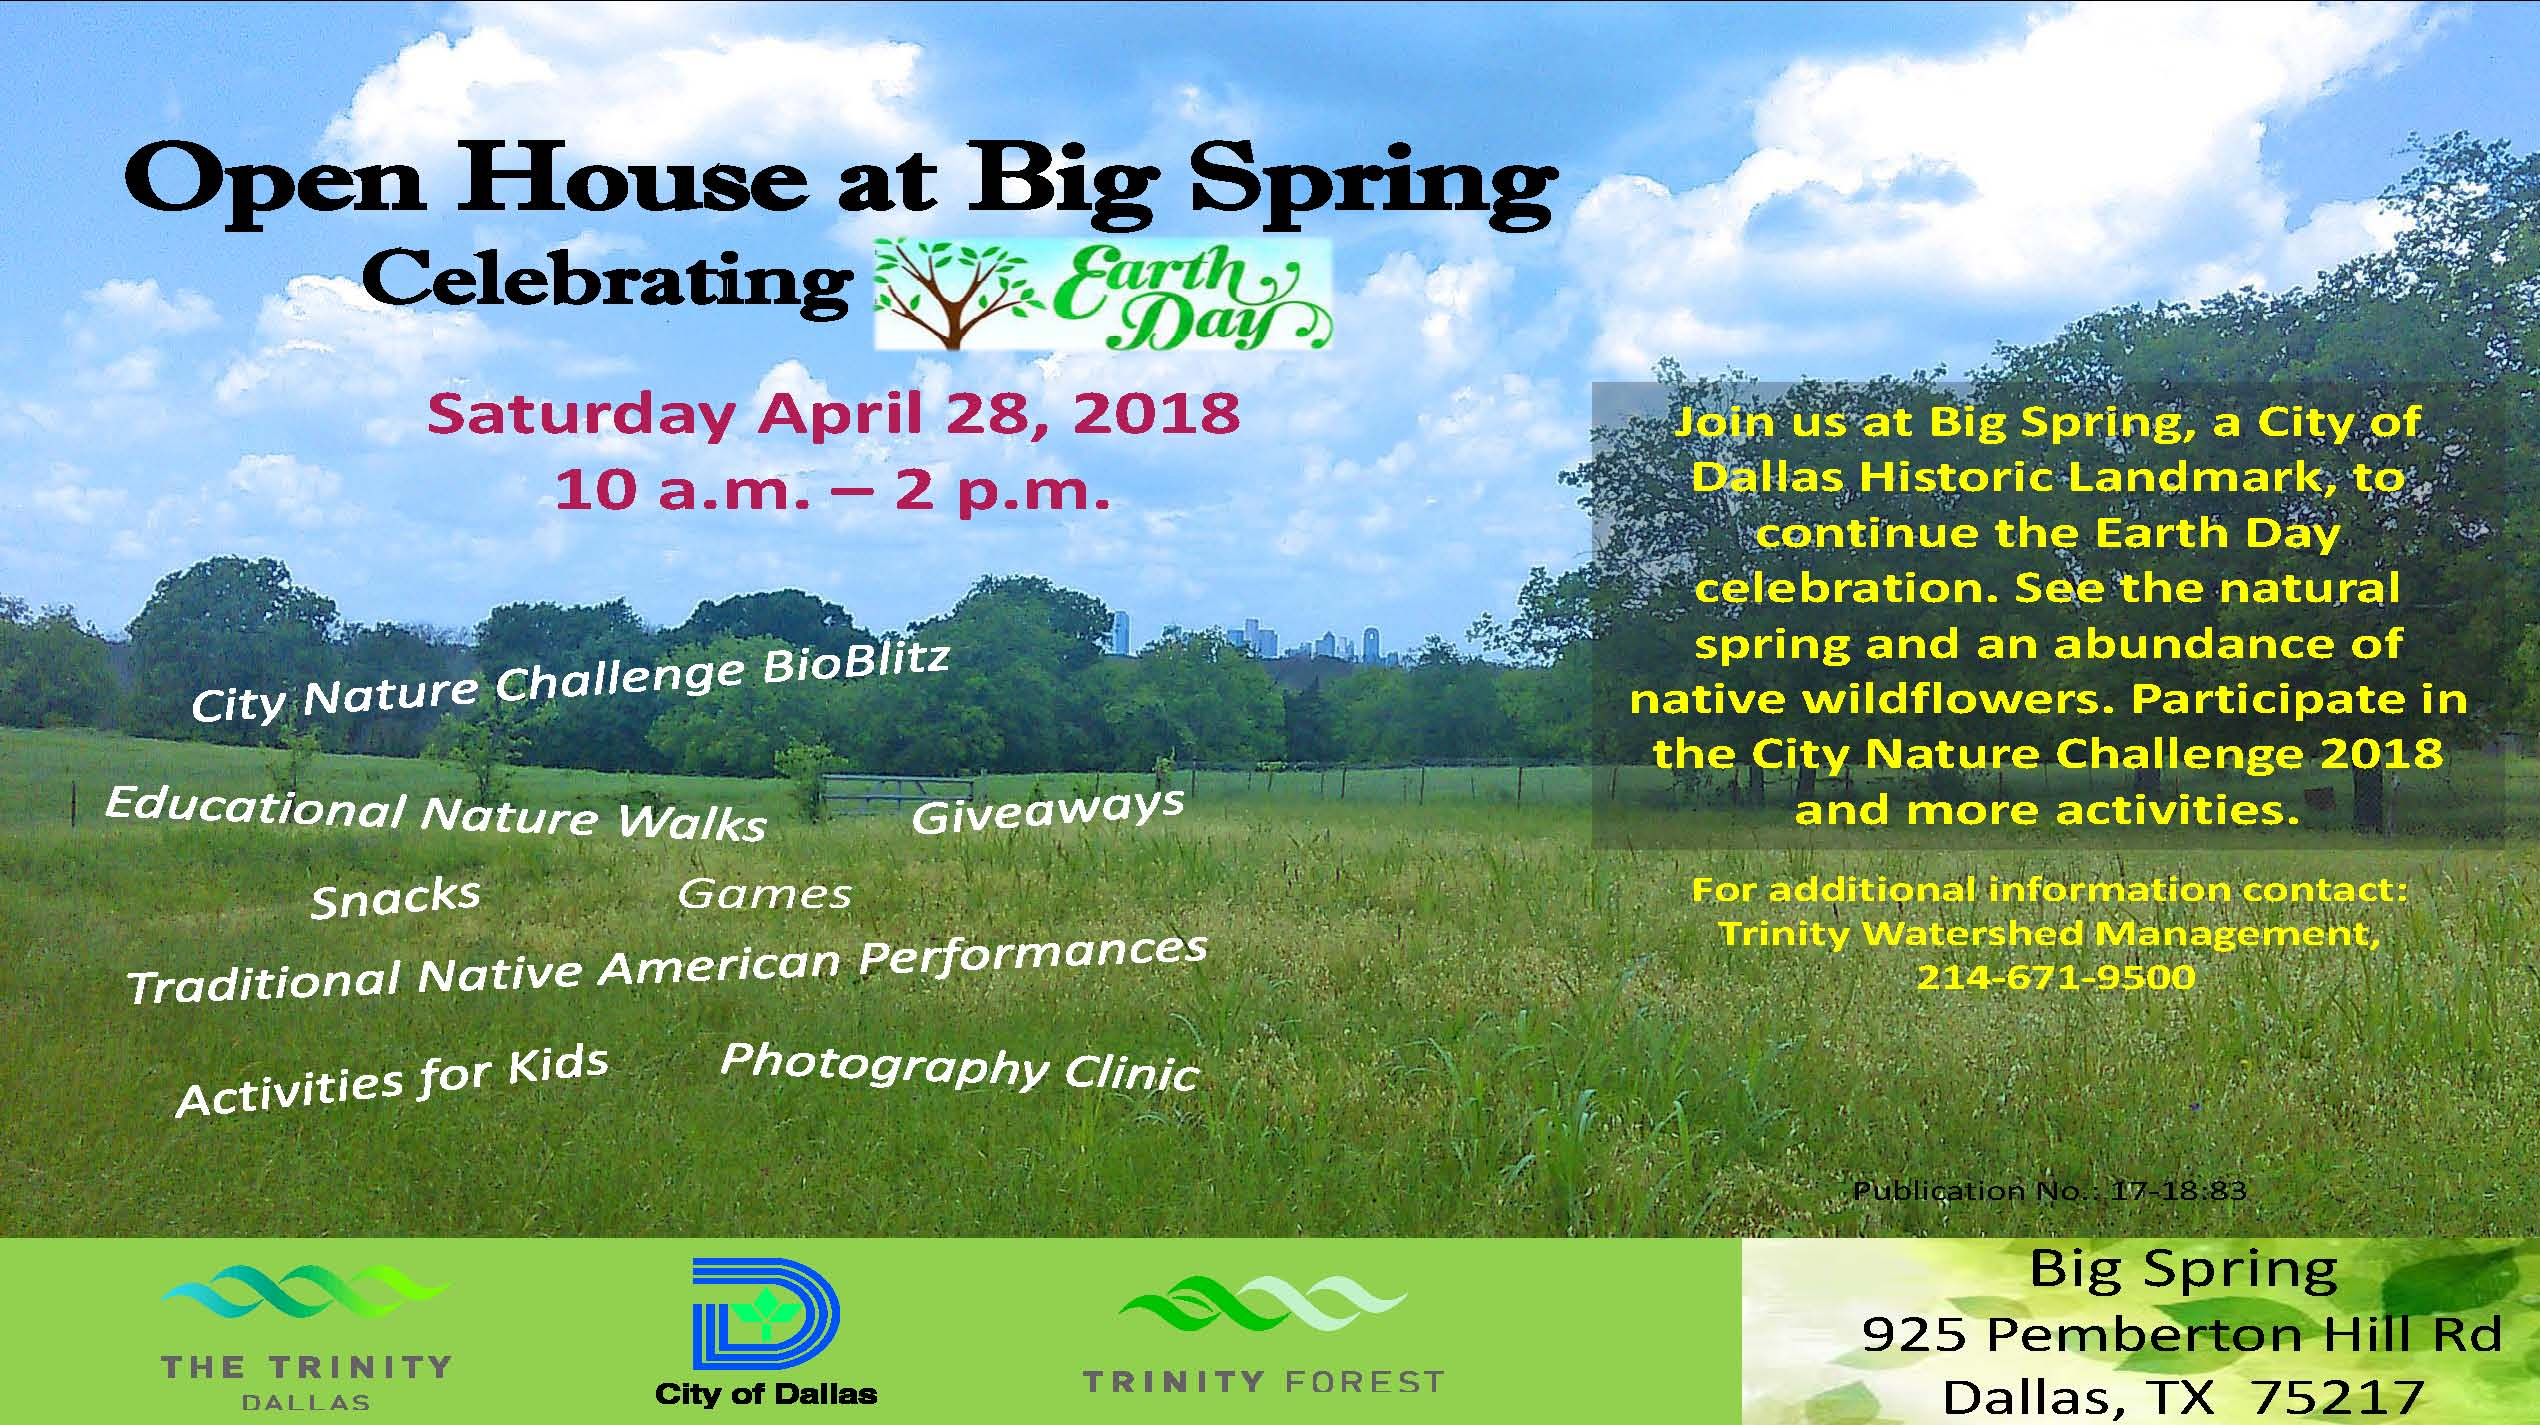 Big Spring, wildflowers, City of Dallas, Trinity WaterShed Management